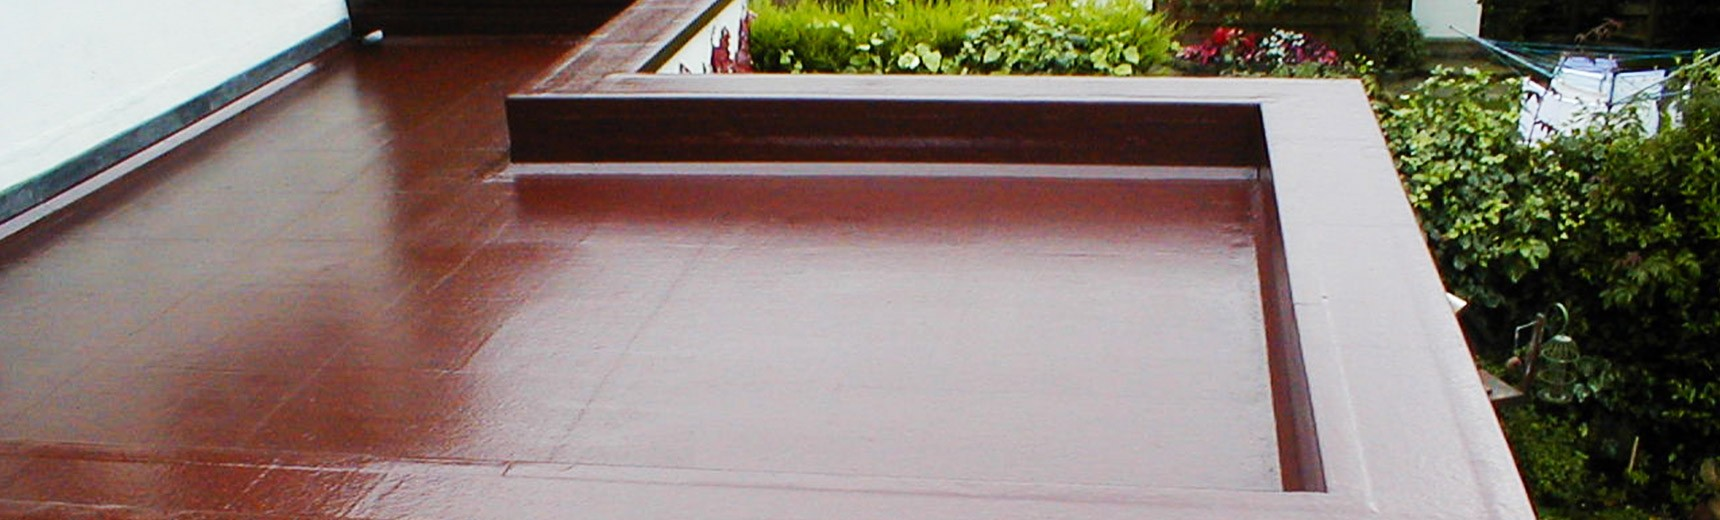 Brown fibreglass roofing Warrington